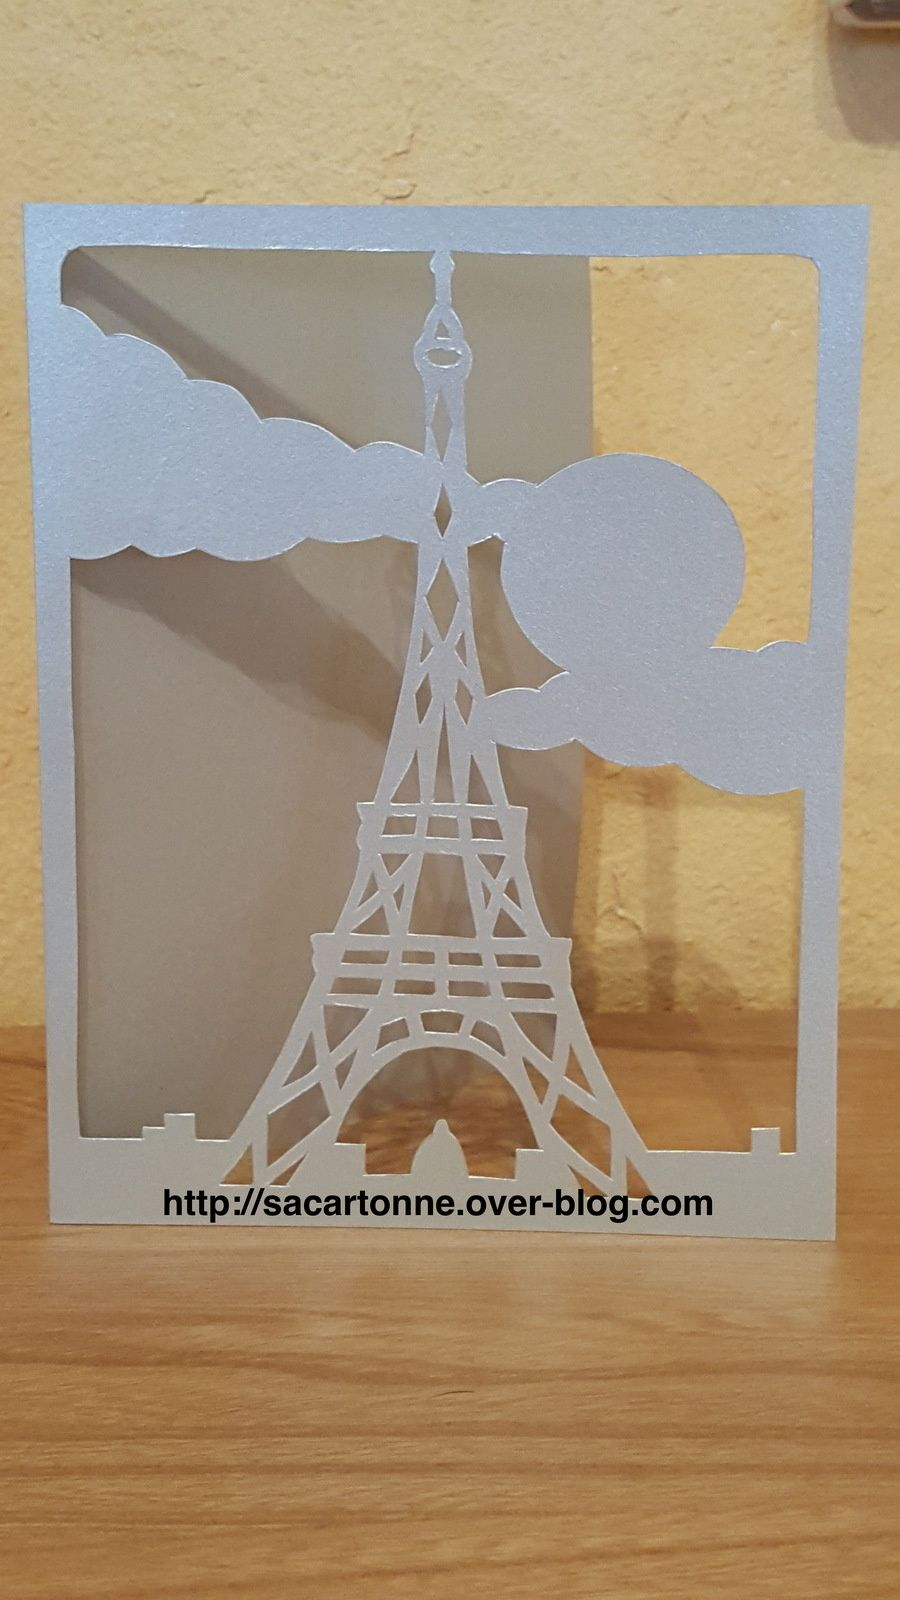 kirigami gratuit tour eiffel invitations pinterest kirigami silhouettes and origami. Black Bedroom Furniture Sets. Home Design Ideas